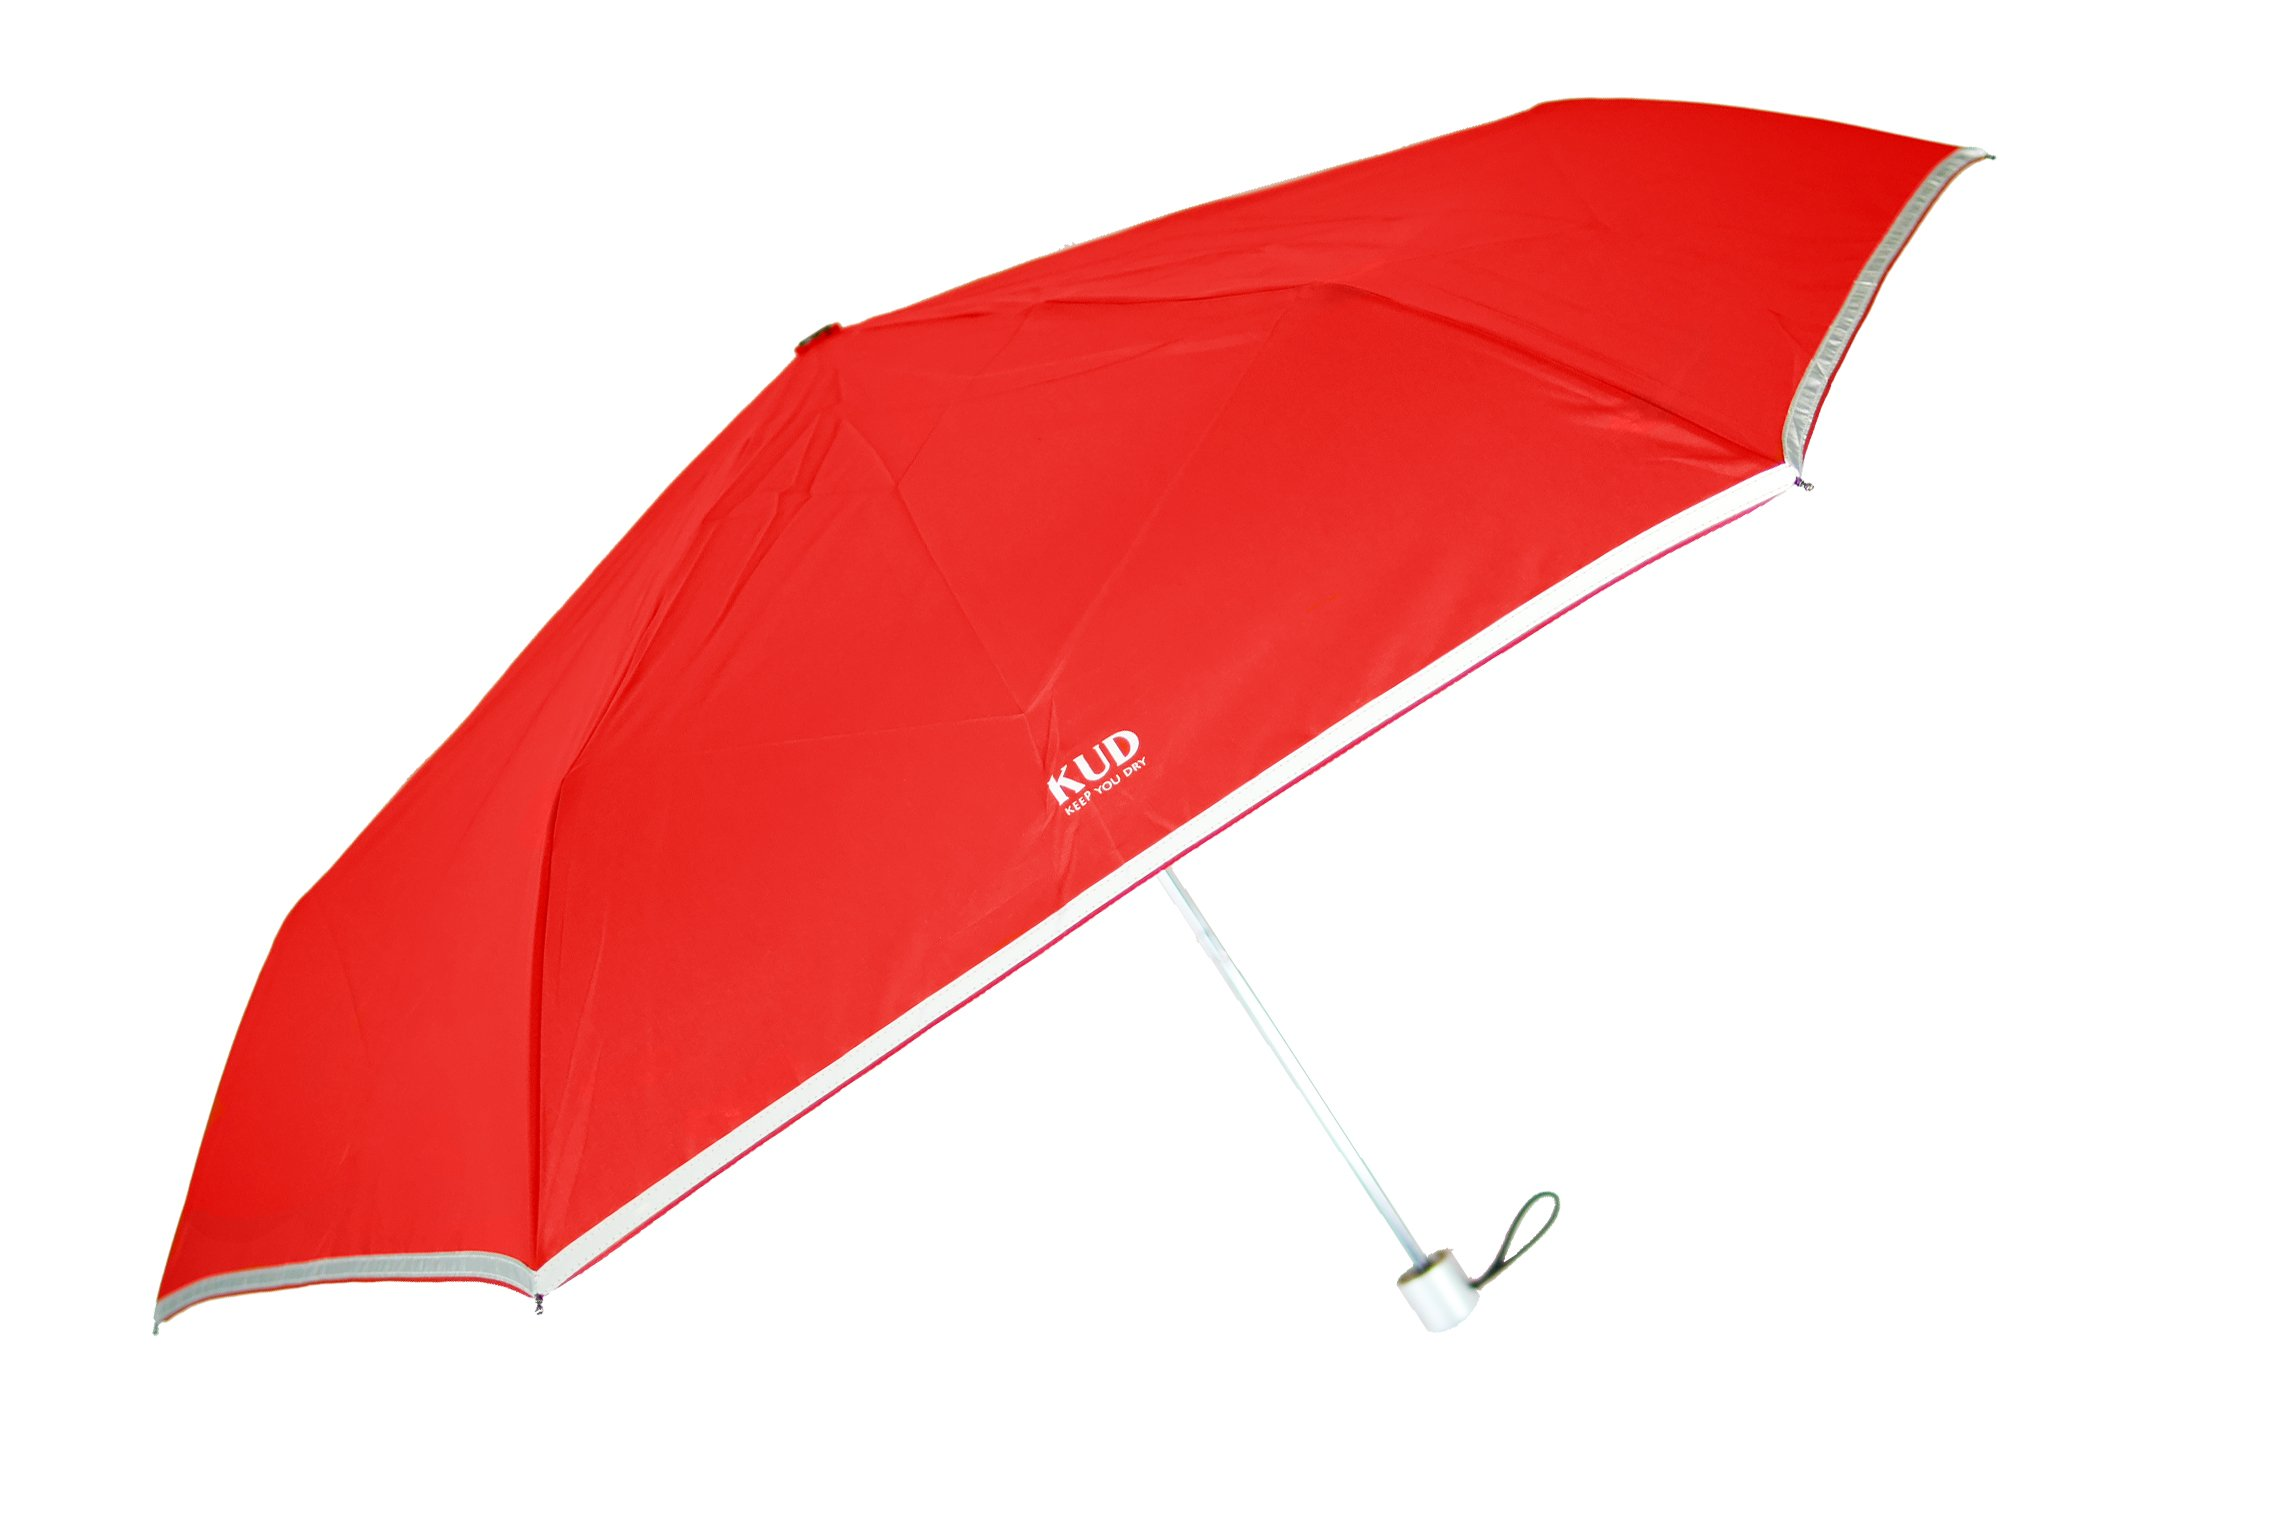 KUD Lightweight Compact travel umbrella with 50 inch Arc large coverage (Red)